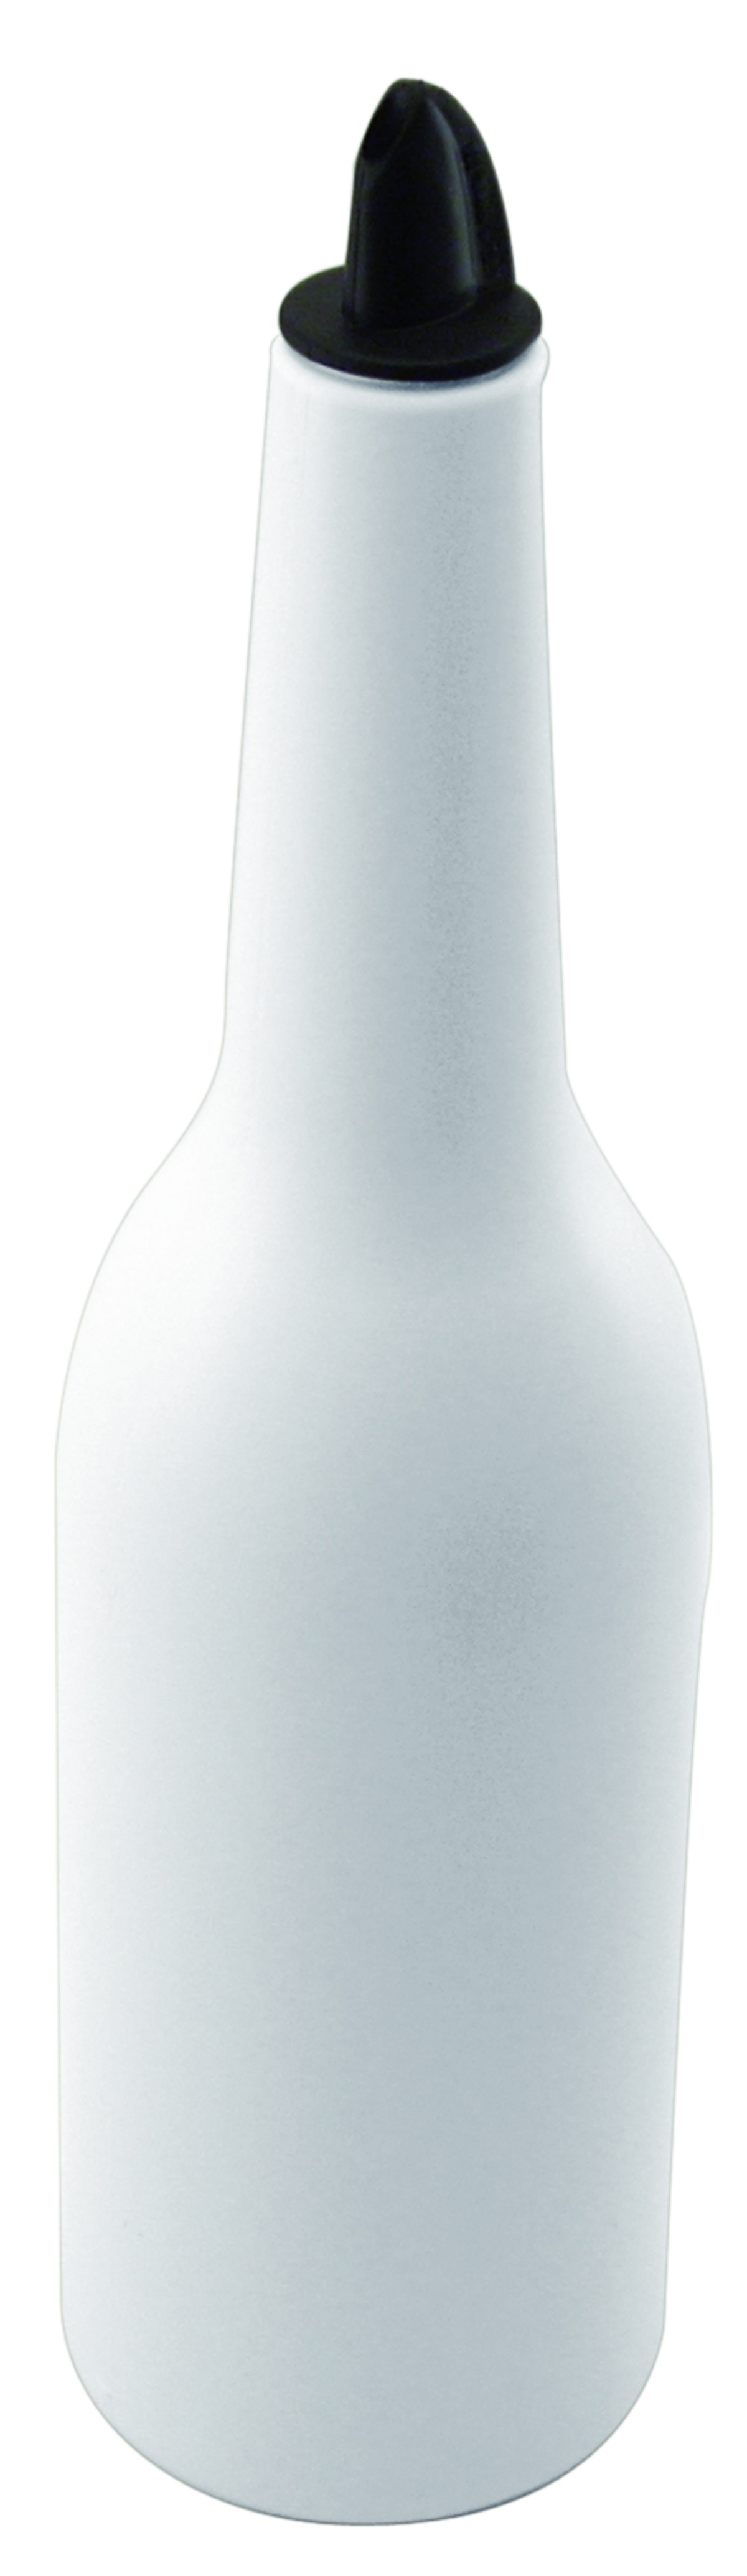 Bouteille verseuse blanc Ø 8 cm 0,75 cl The Bars